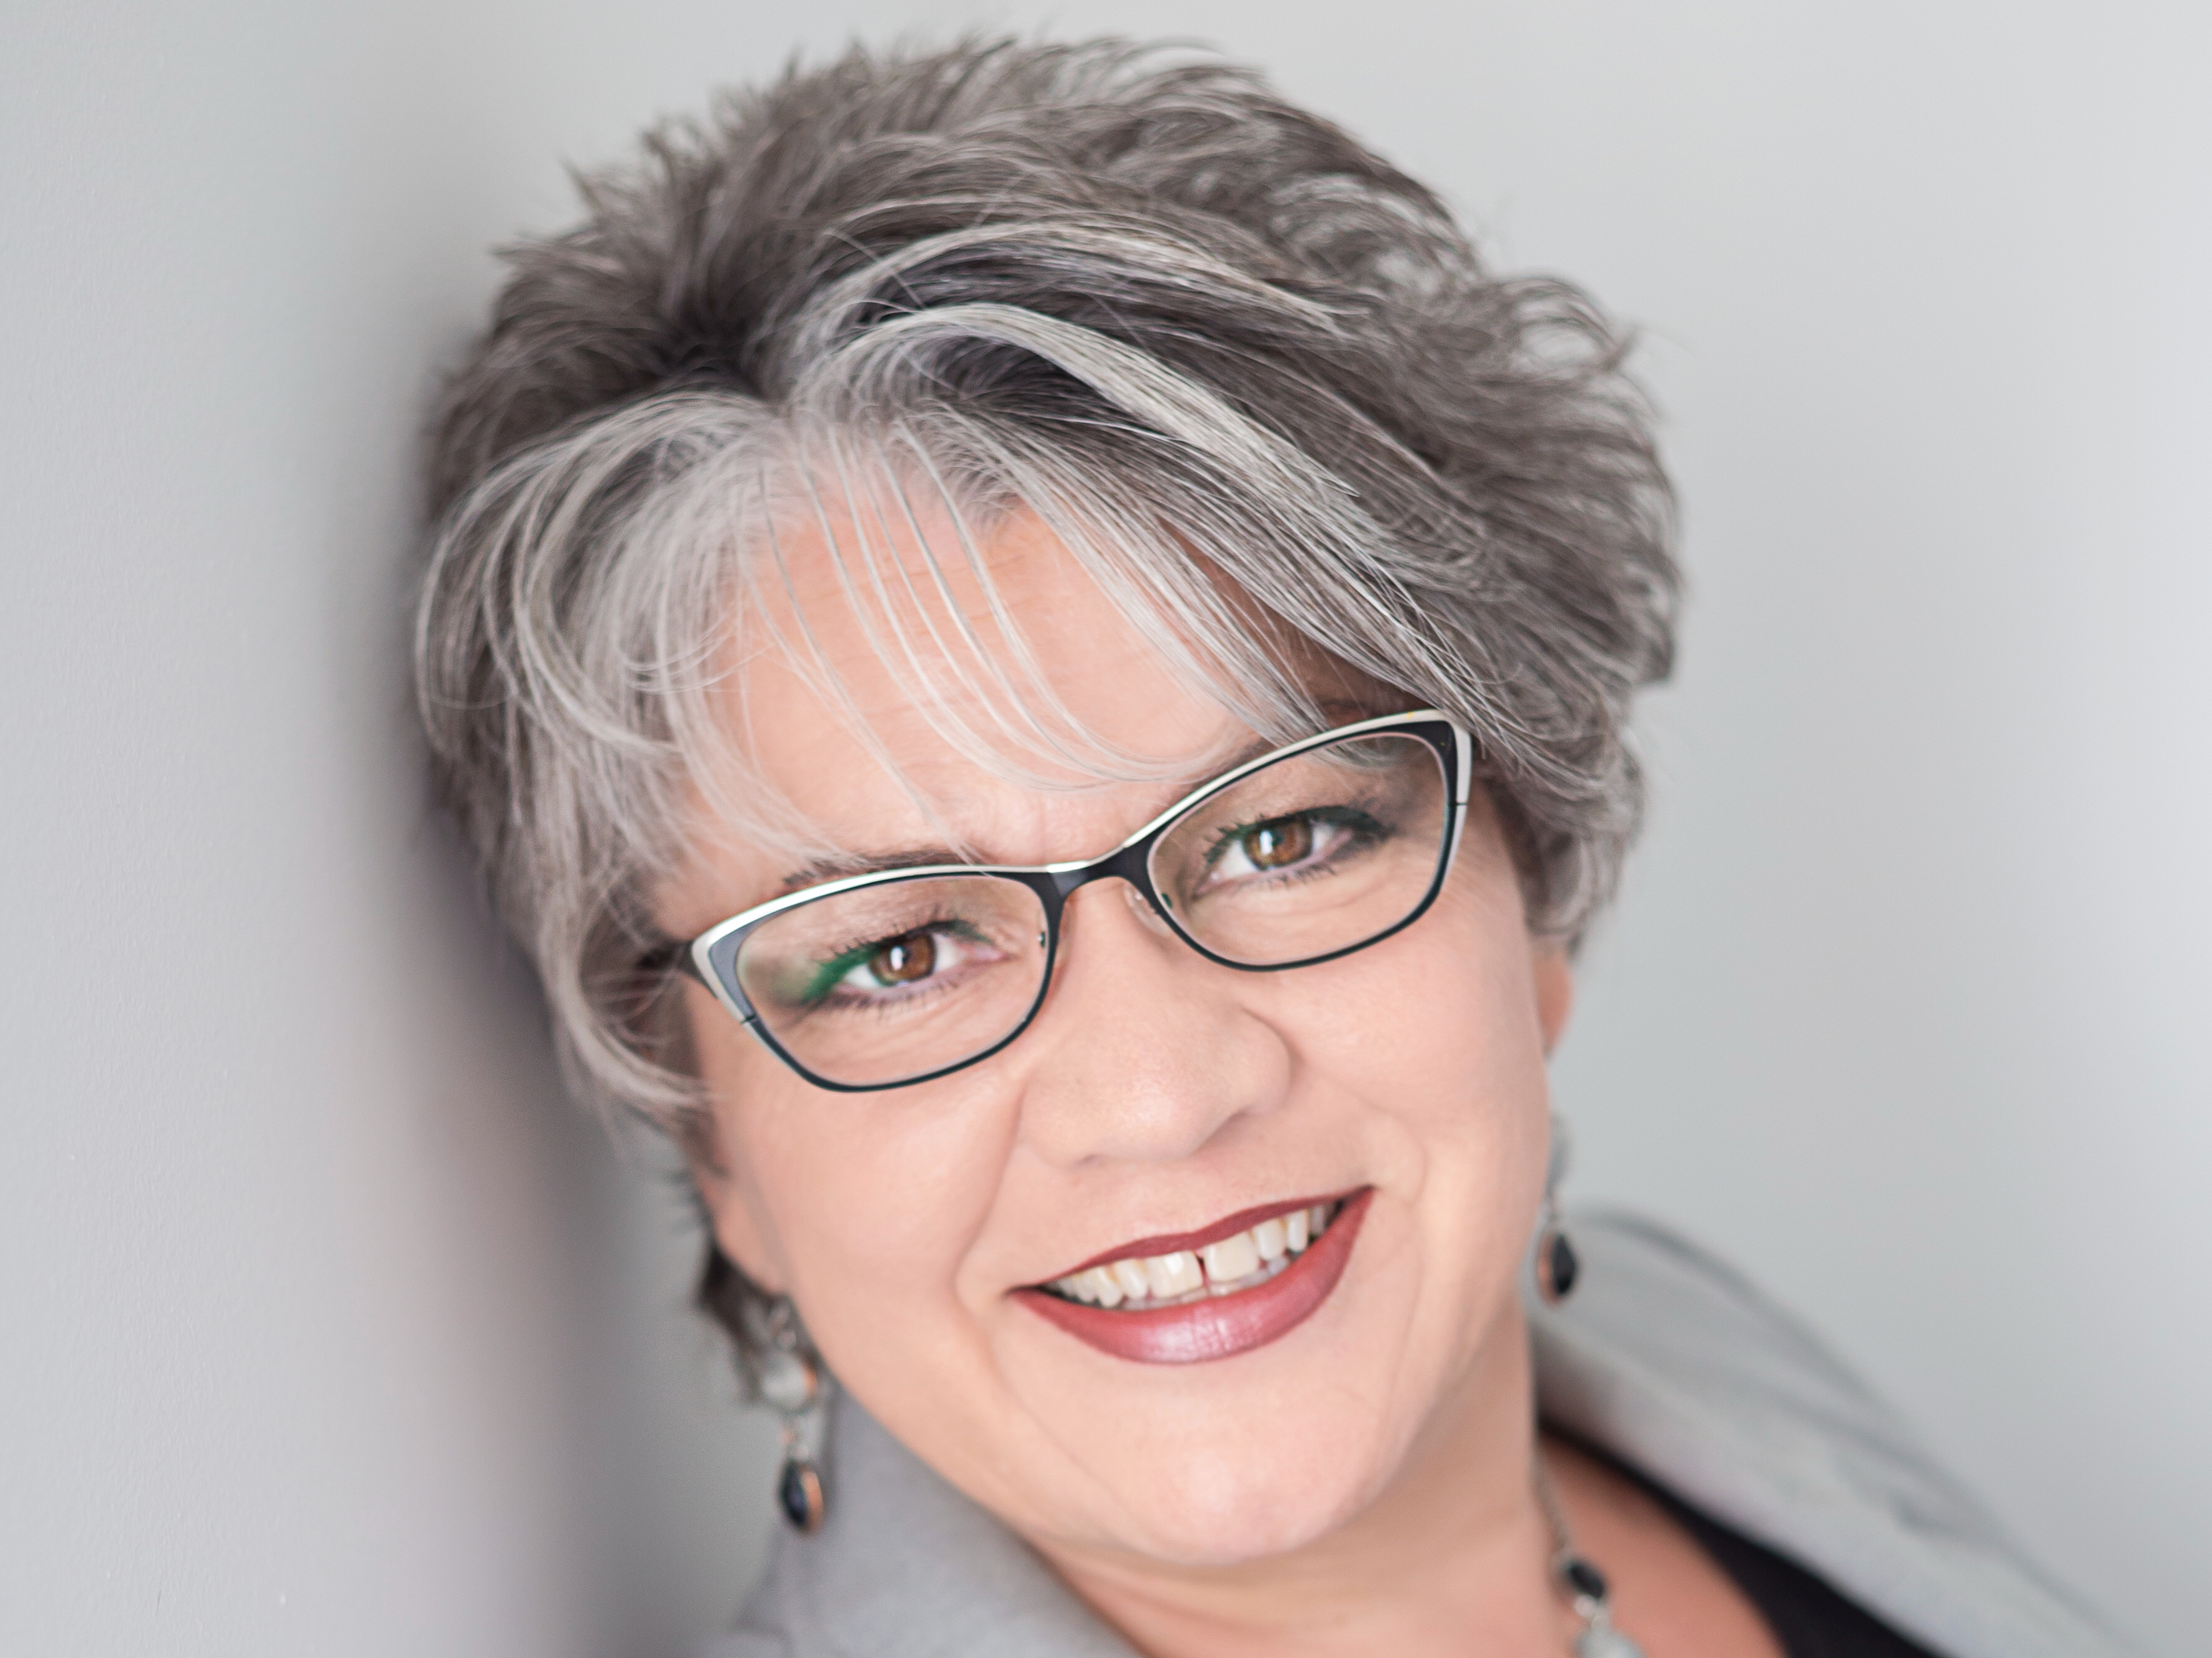 Interview with Tina Plett, your local REALTOR® for Grunthal.